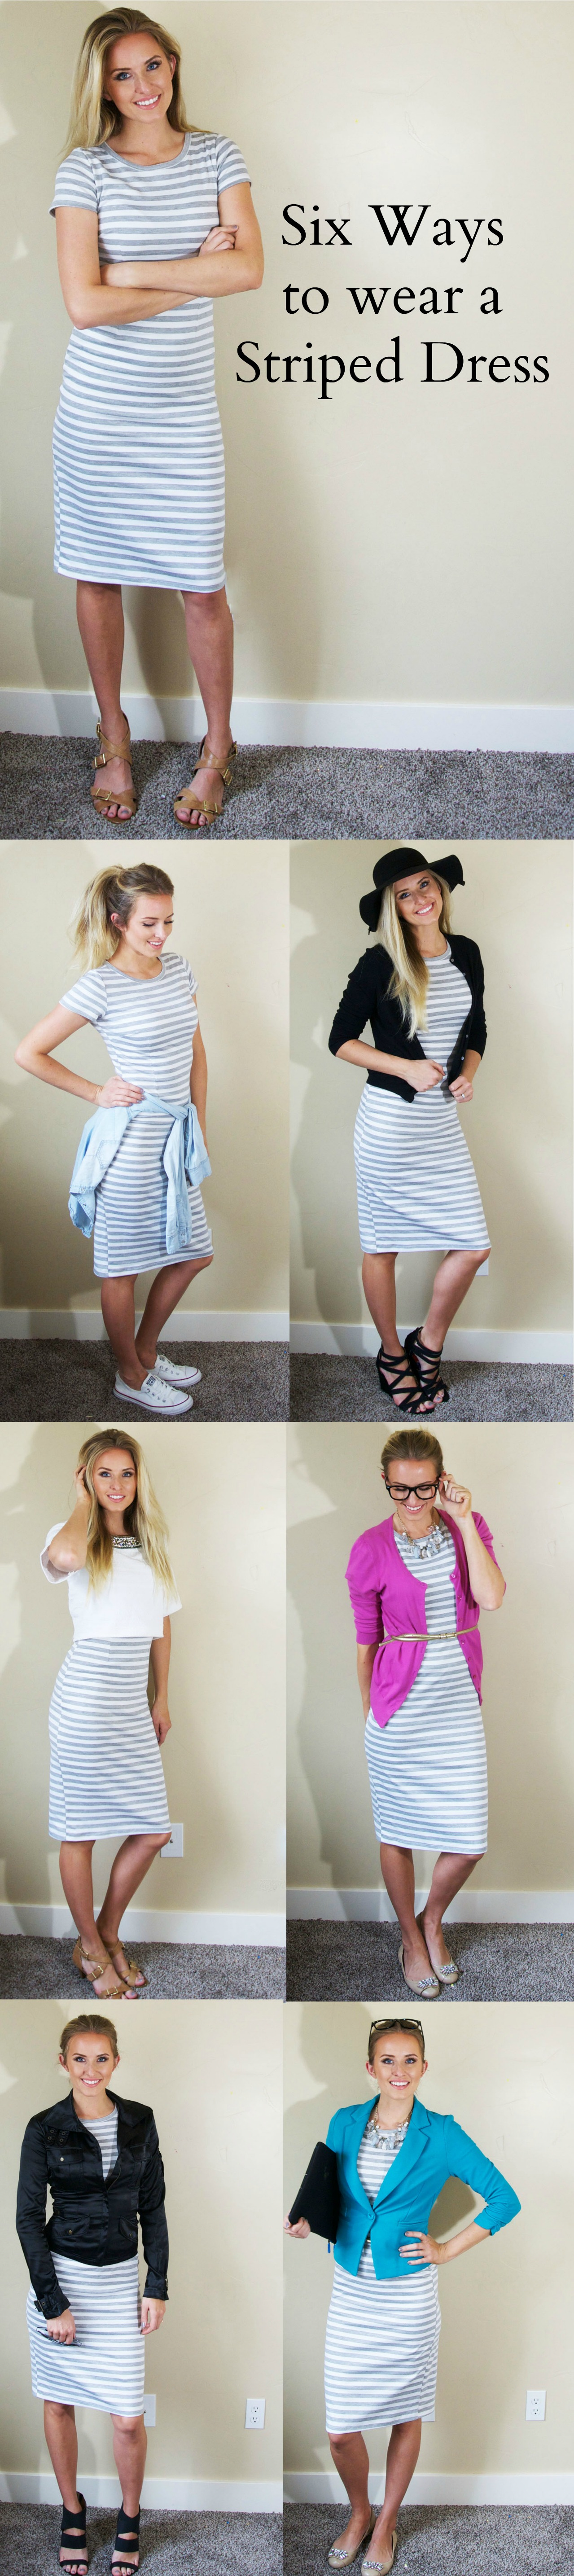 This dress!  So many cute ways to wear it!